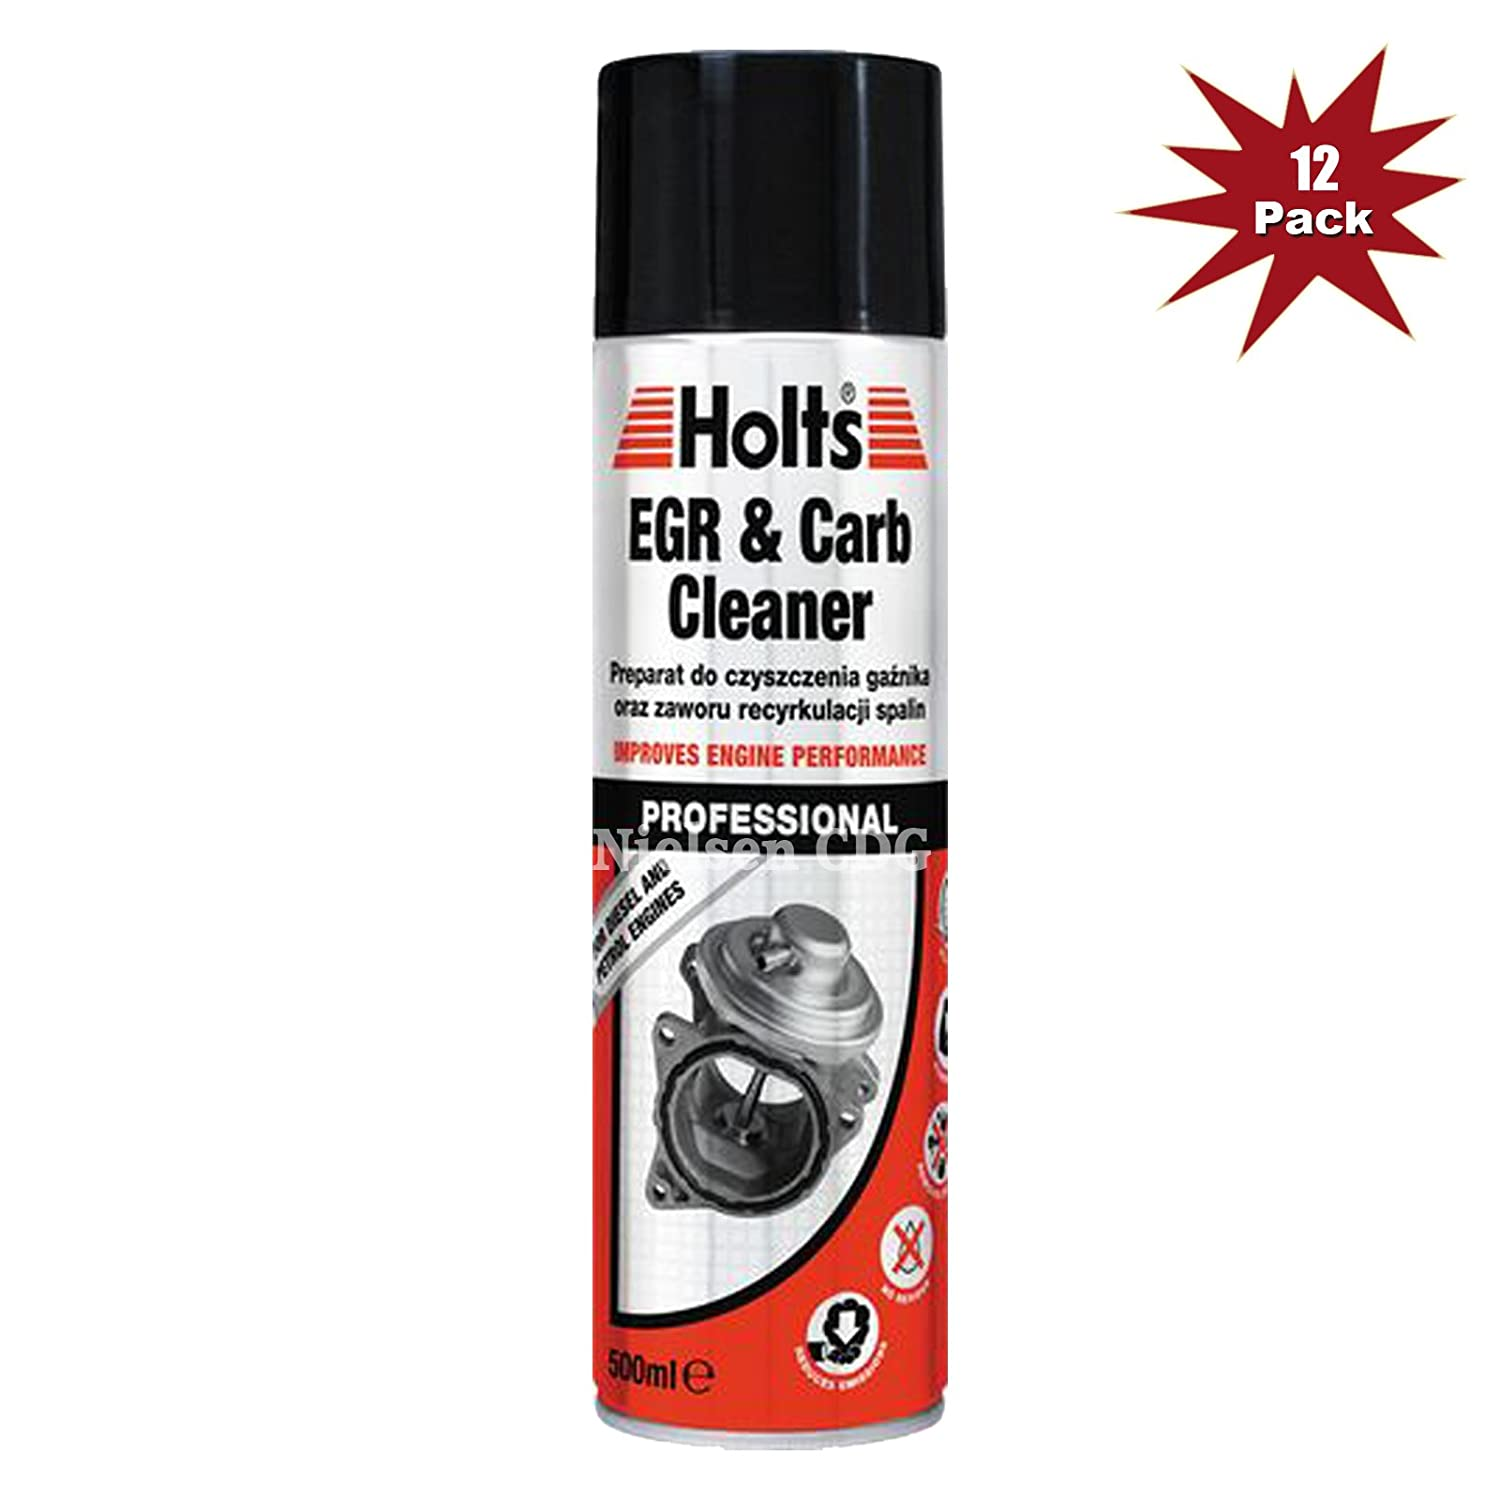 Holts Egr & Carb Cleaner for Petrol & Diesel Engines 500ml - 12pk Holt LLoyd